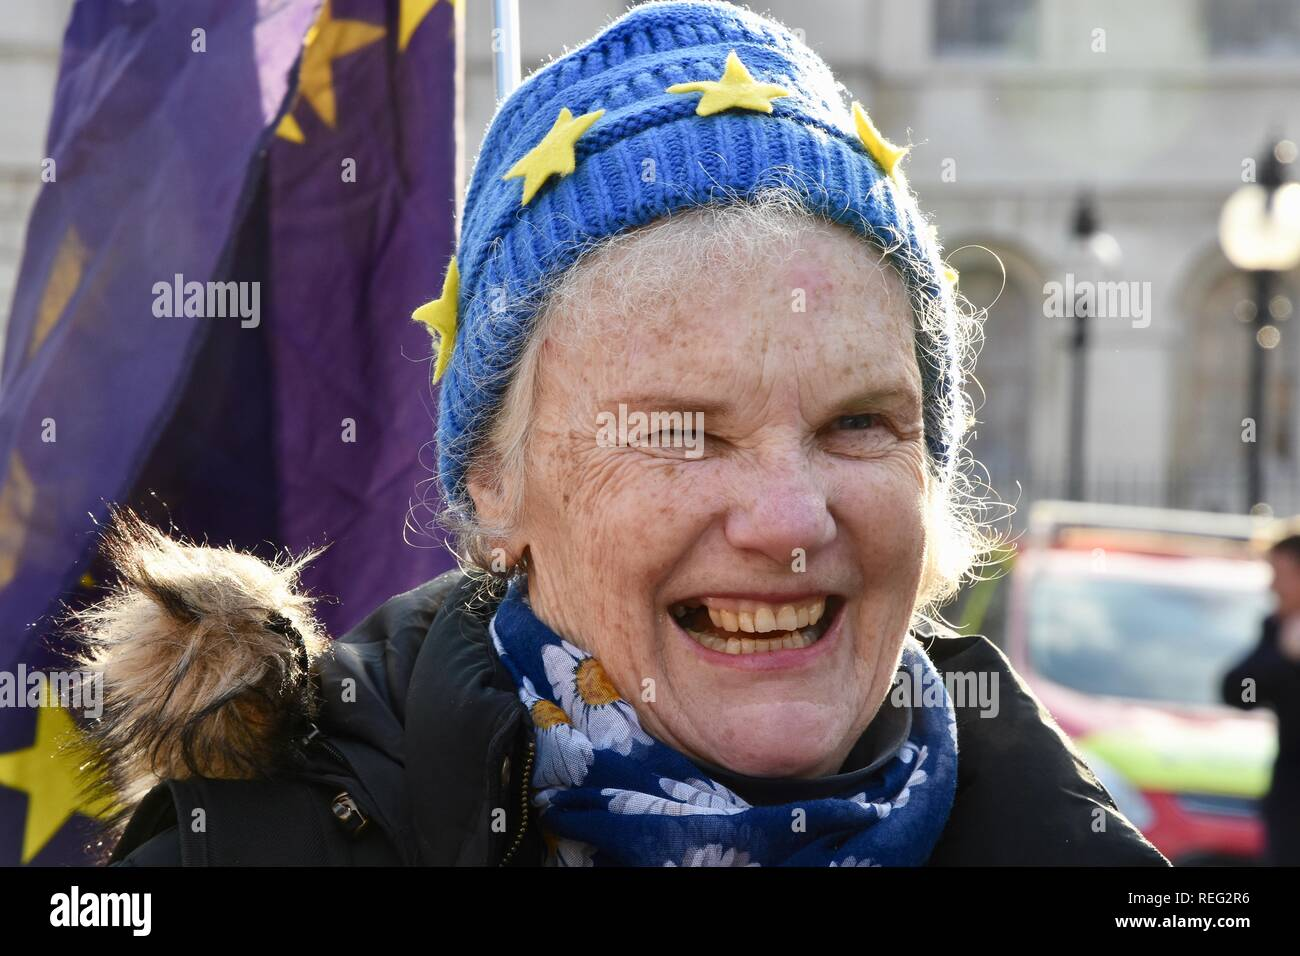 Anti Brexit Protest.Remainers continued their protests on the day that Theresa May revealed her Brexit Plan B.Houses of Parliament,Westminster,London.UK - Stock Image